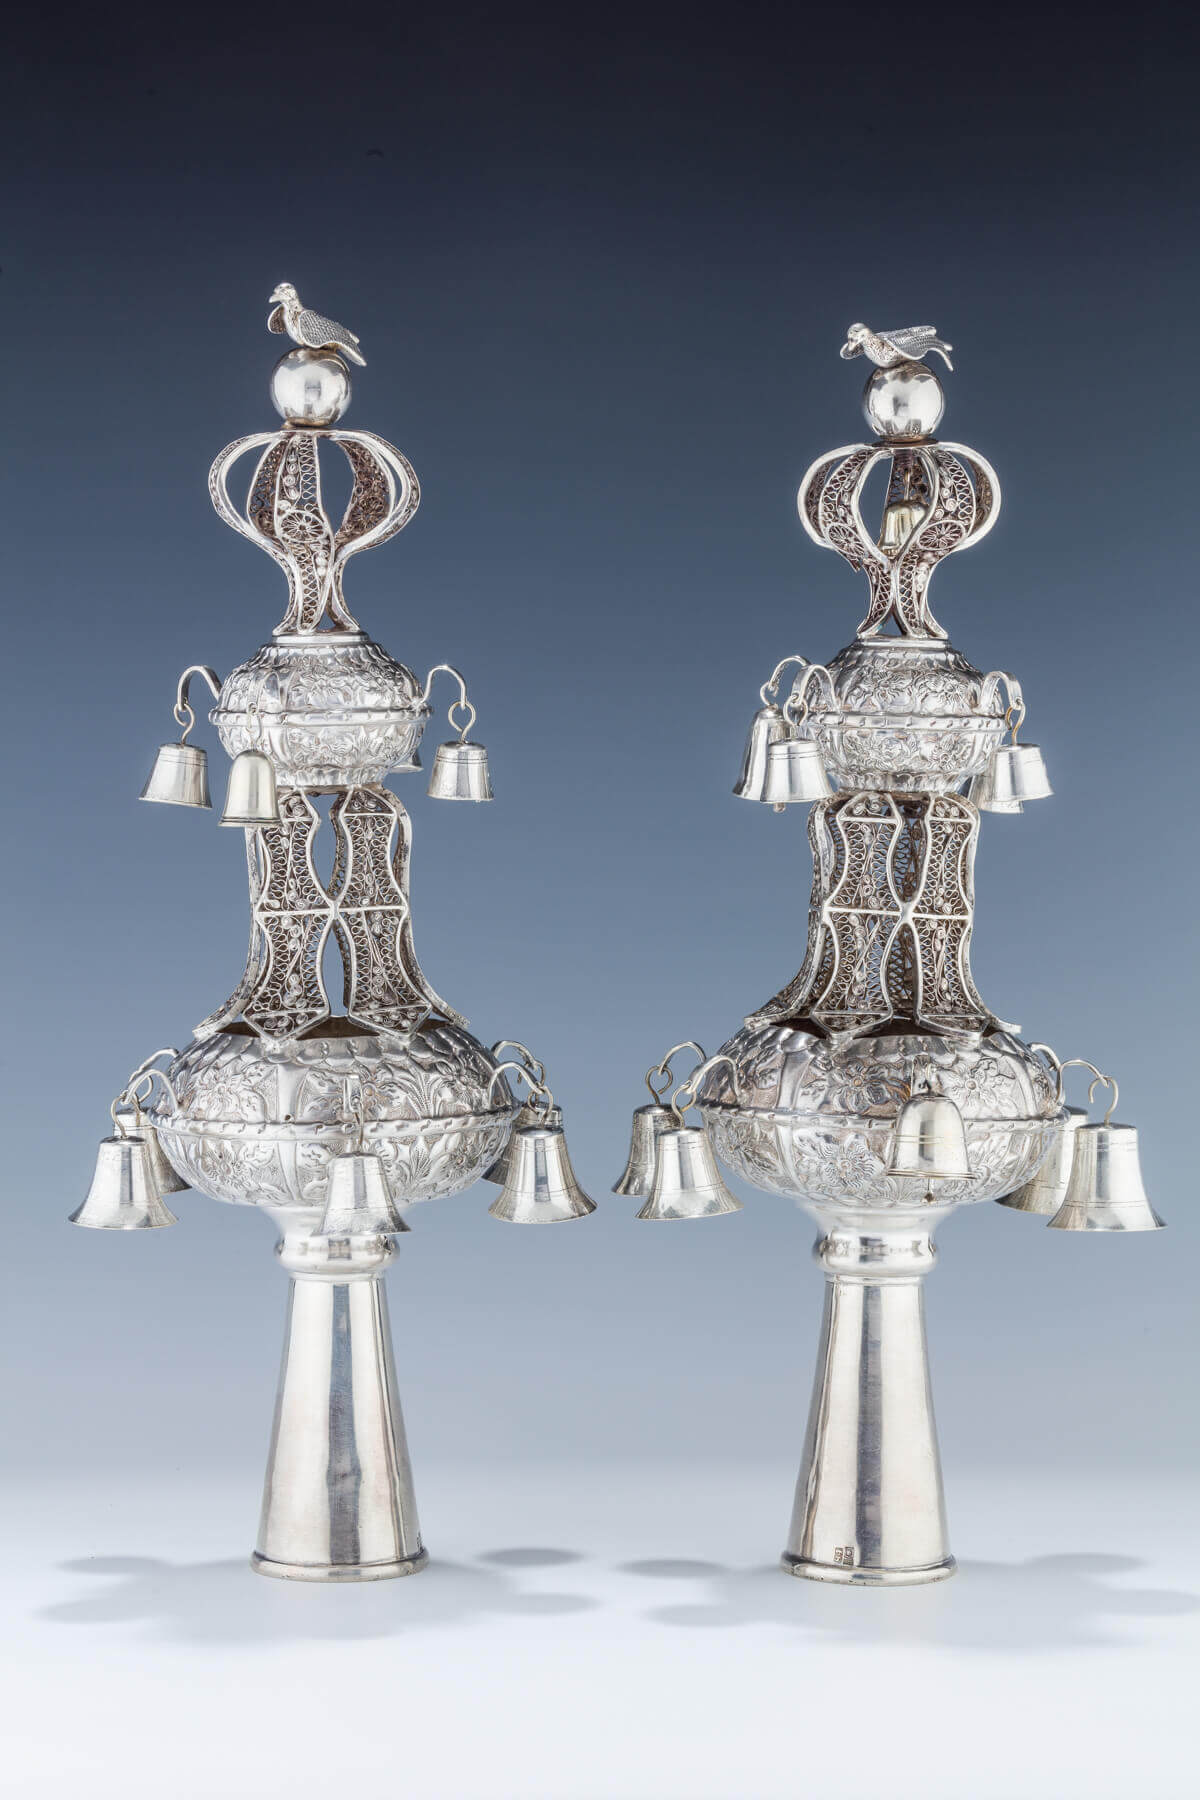 019. A PAIR OF SILVER TORAH FINIALS